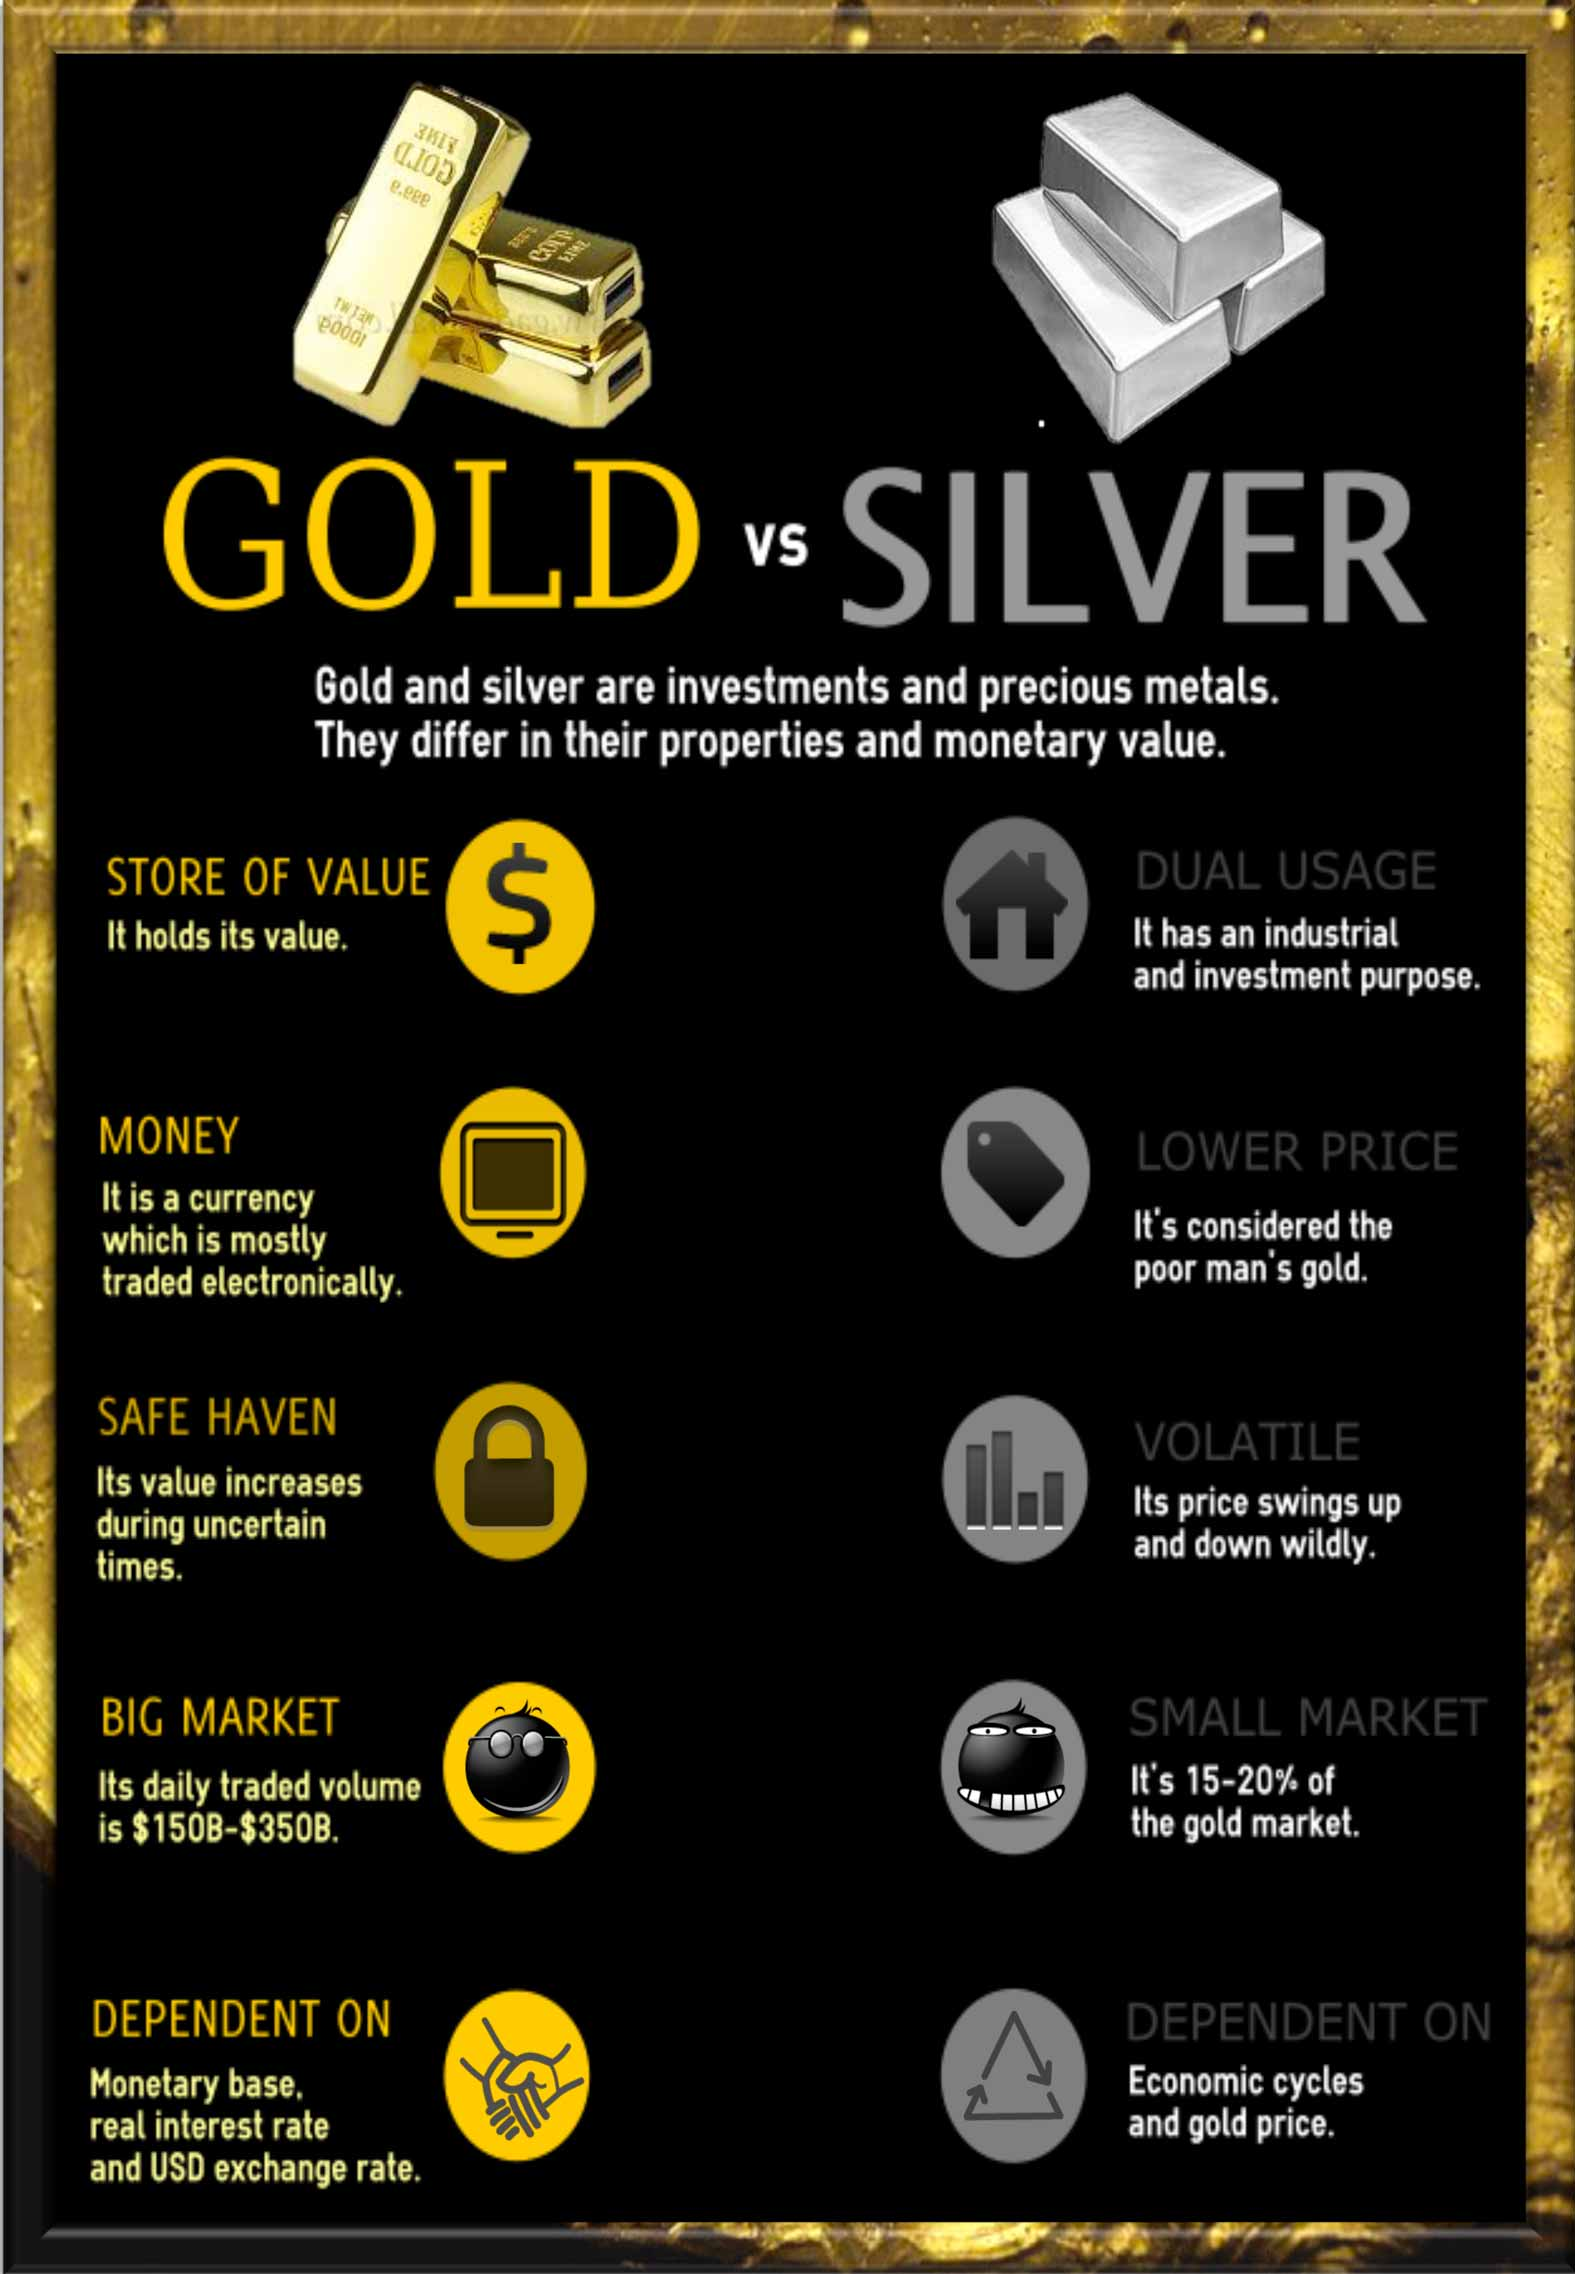 research paper gold price Bullionstar research bullionstar gold  paper vs physical gold and  the paper spot price of gold is the price you pay per oz for actual bullion plus the.